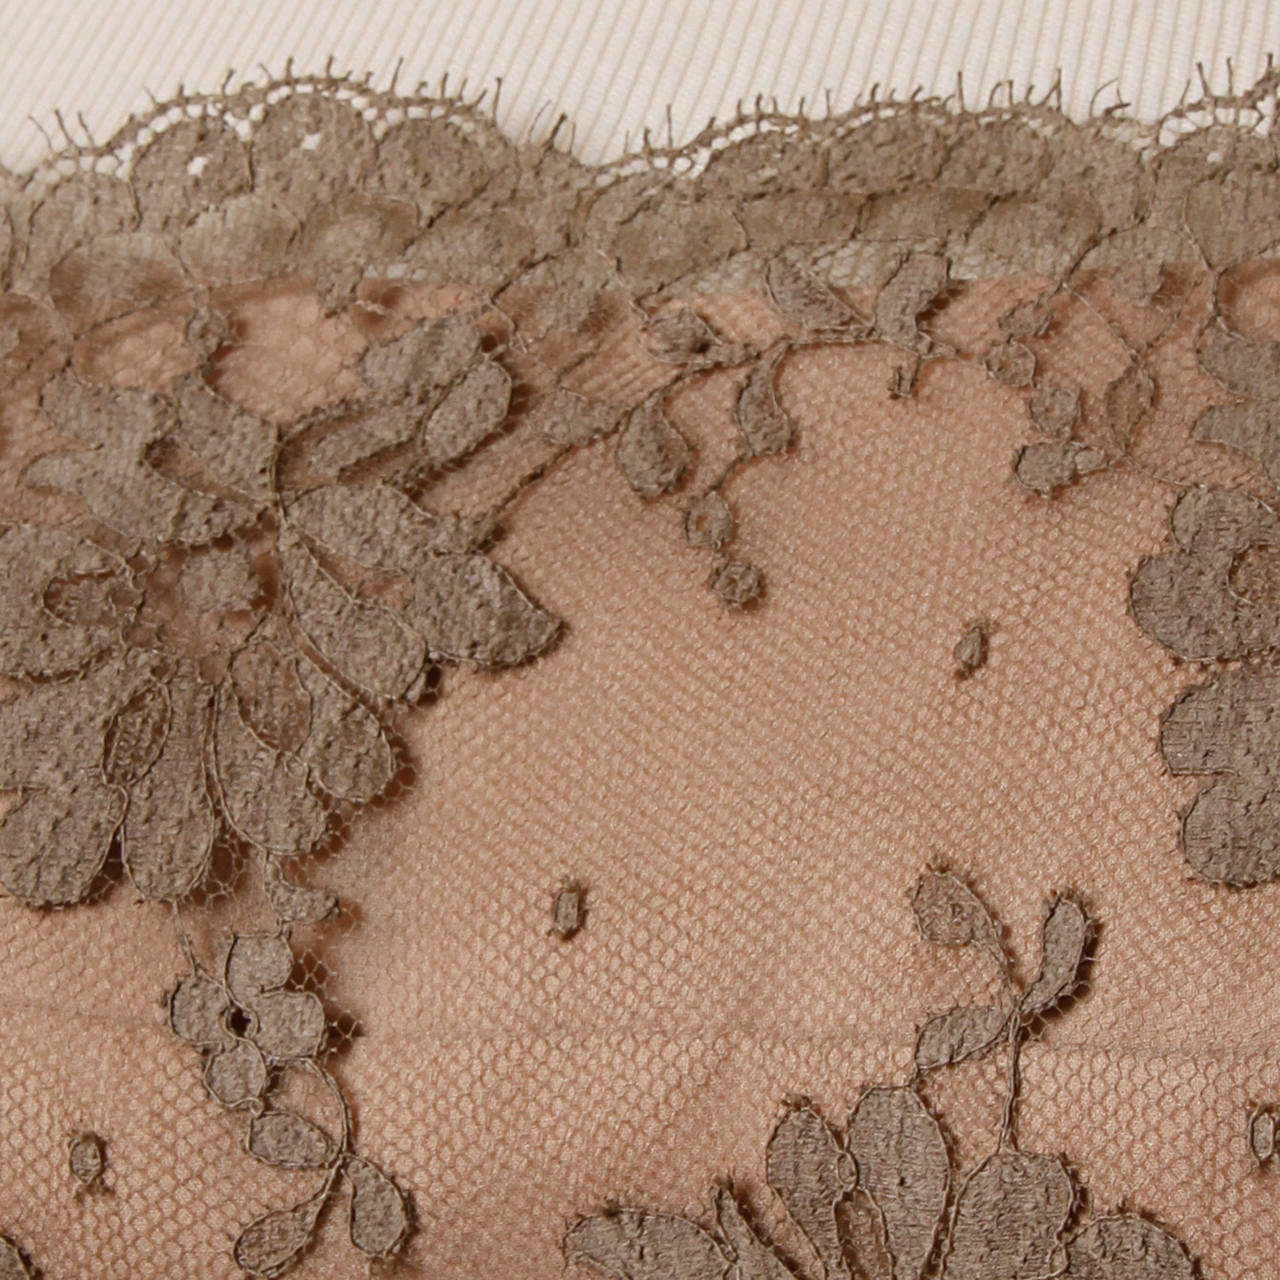 Brown Edith Flagg Vintage 1960s Nude Illusion Silk + Lace Cocktail Dress For Sale